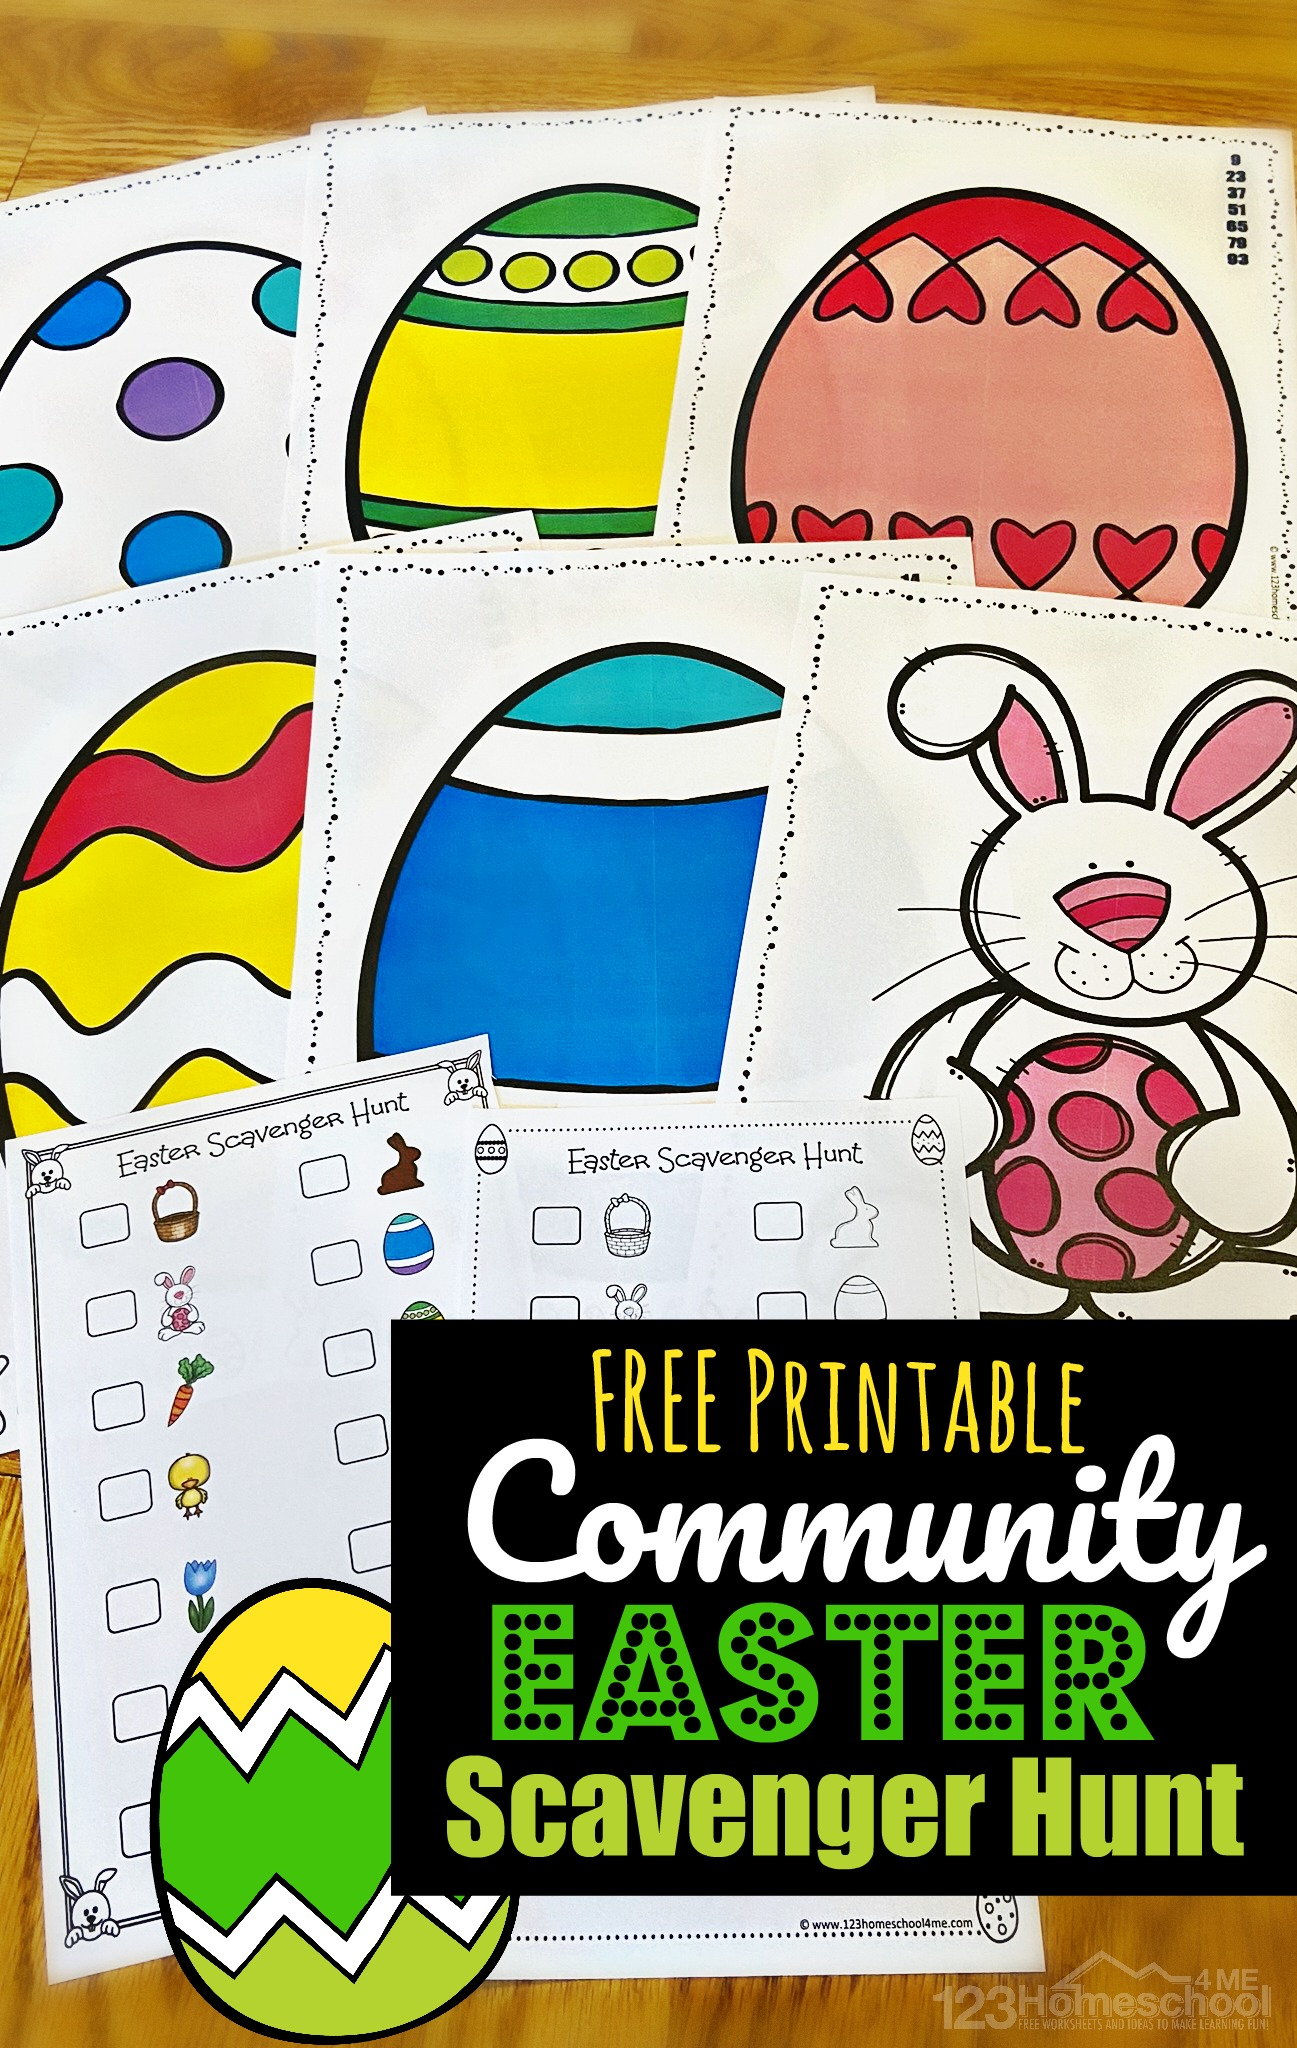 FREE Easter Egg Hunt Printables - free printable clues for neighbors to put in their windows and checklist for families to go around neighborhood looking for decorated easter eggs, easter bunny, baskets, chocolate bunny, and more all while observing social distancing. #easterprintable #eastergame #easteractivities #preschool #toddler #familyfun